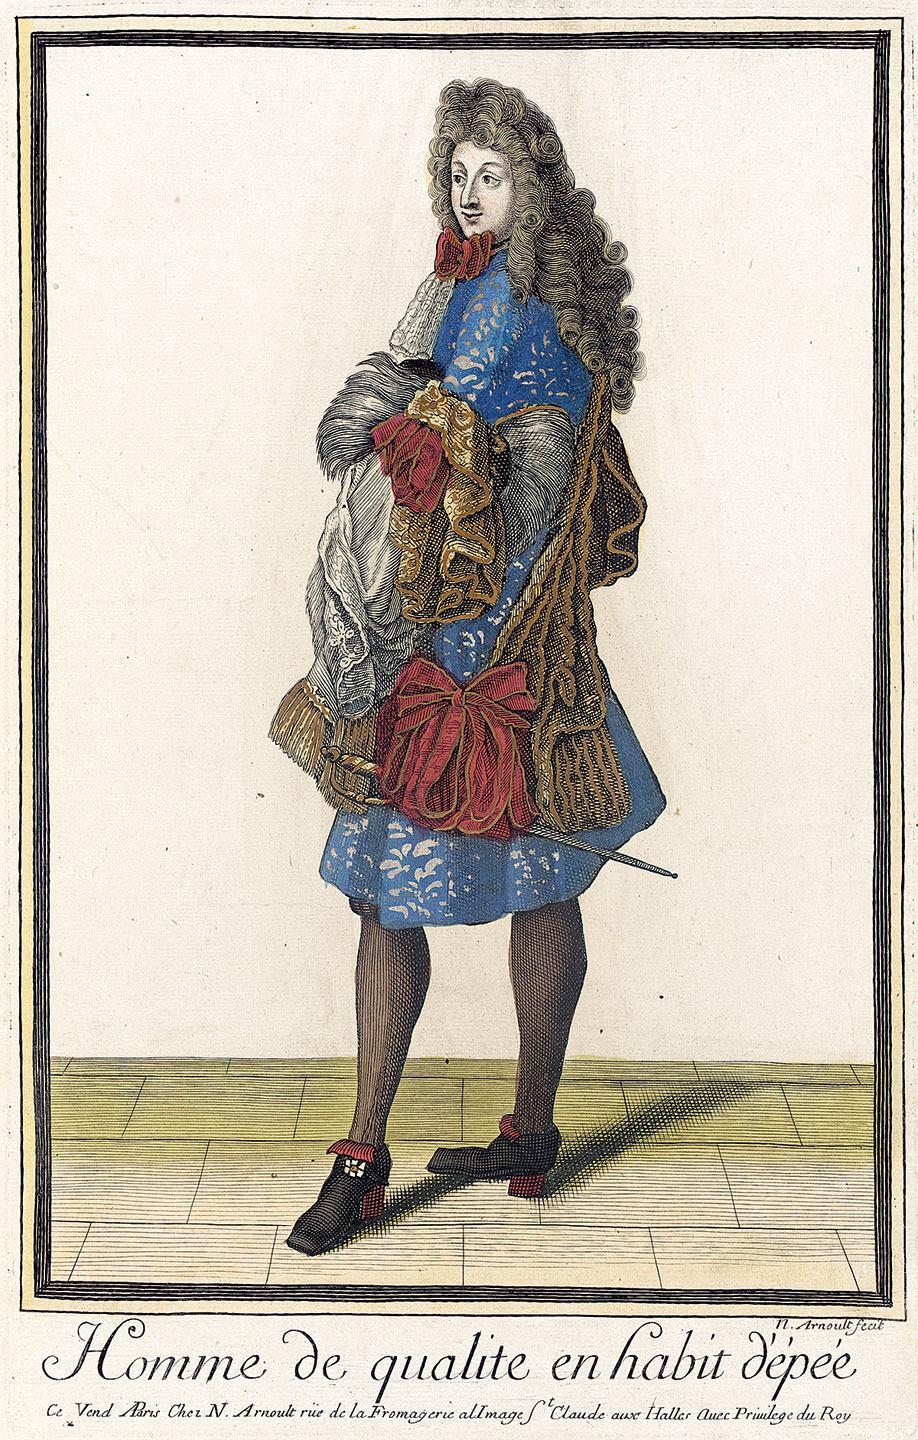 AILEEN RIBEIRO: HOMME DE QUALITE EN HABIT D'ÊPÉE by Nicolas Arnoult, French, of handcolored engraving on paper, 1683-1688.  Courtesy of the Los Angeles County Museum of Art.